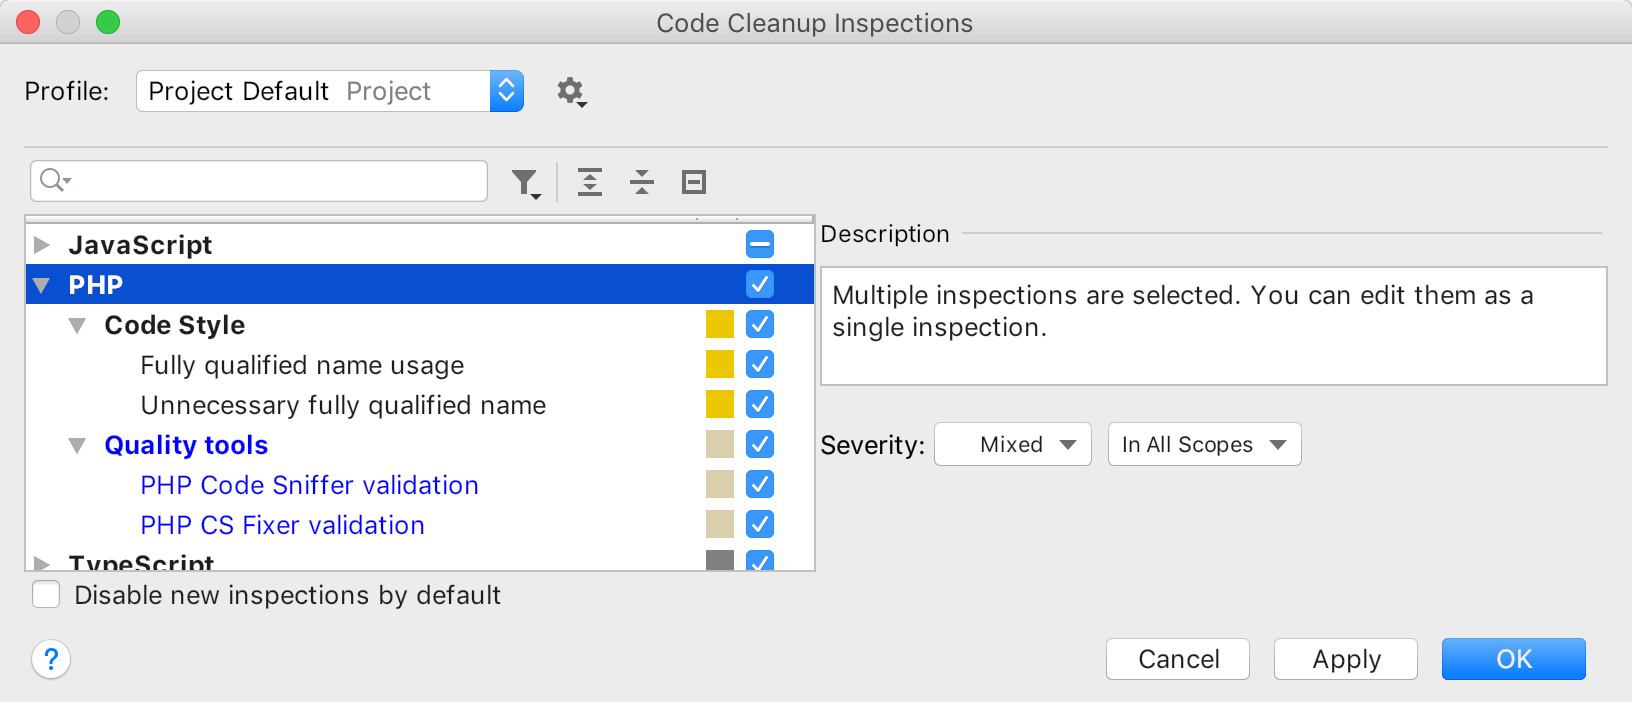 code-cleanup-inspections